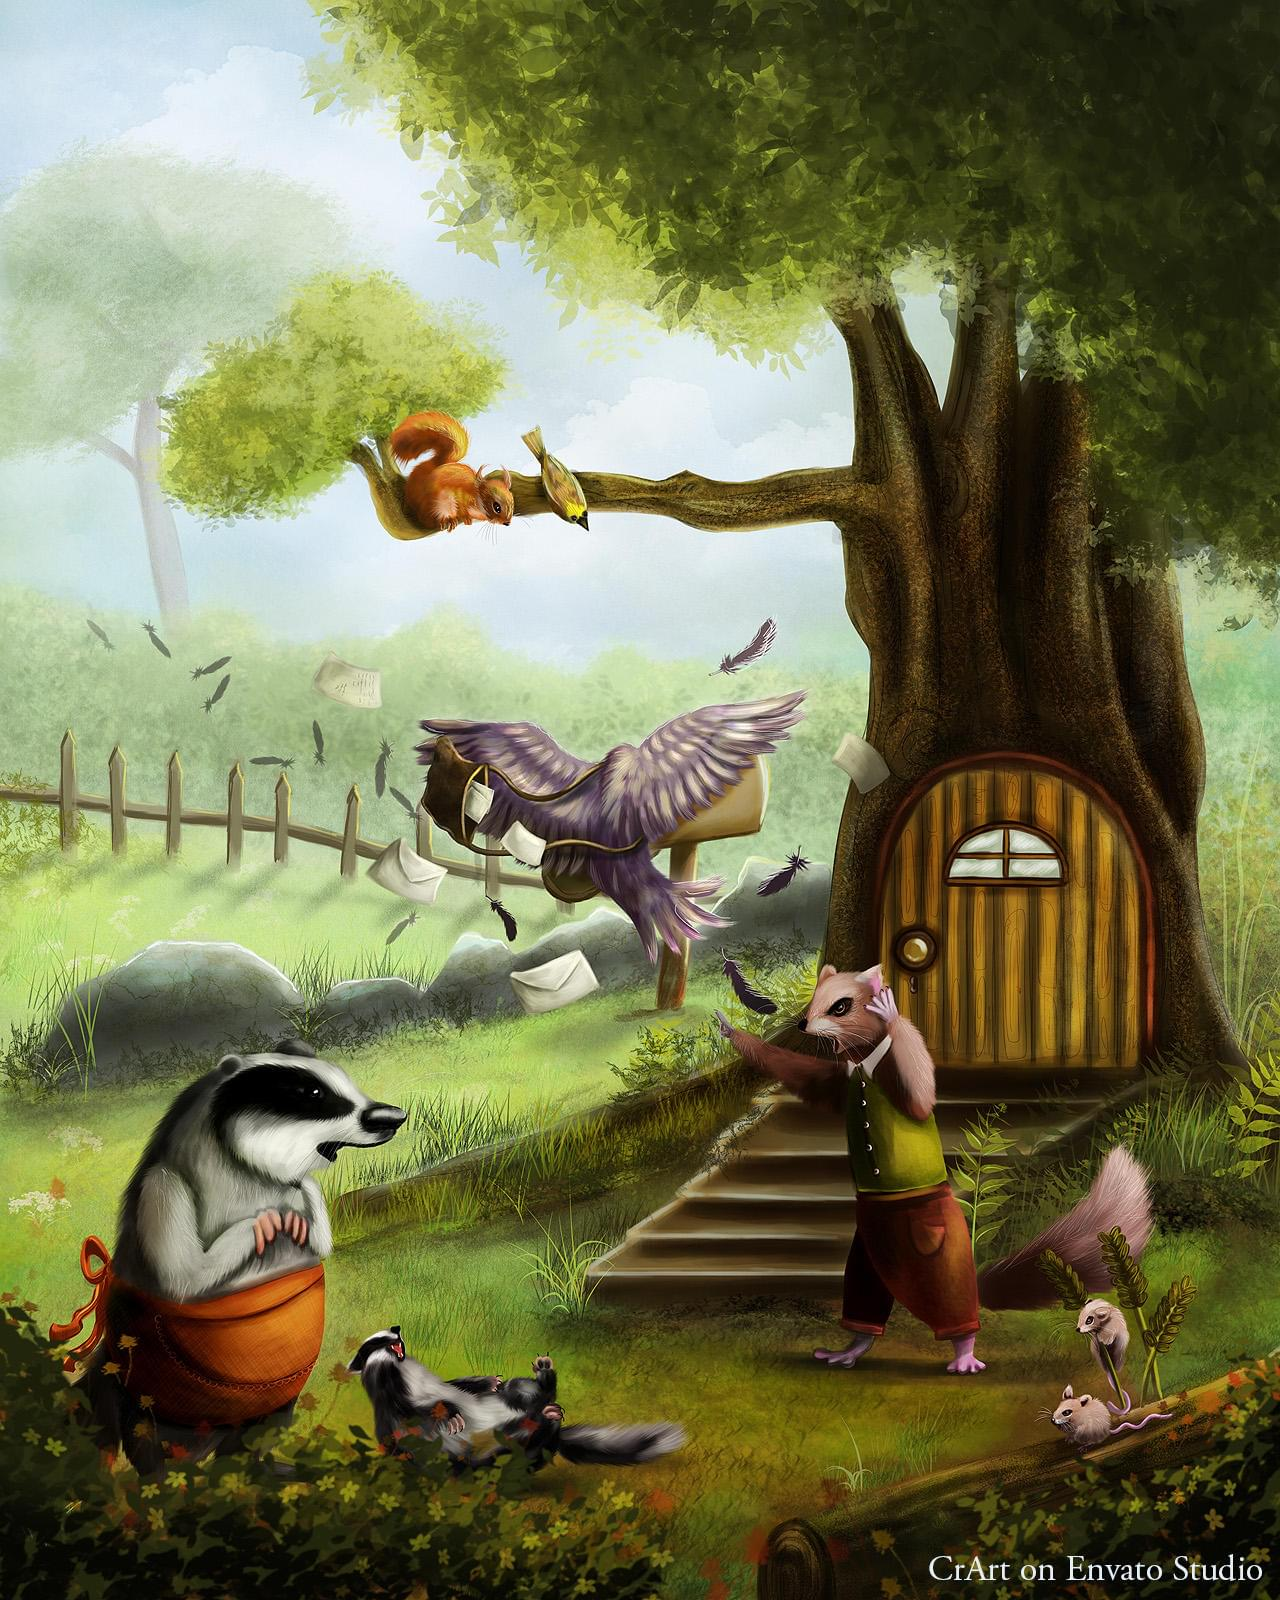 Children Illustration - Digital Painting - Storybook Illustration - Children Books by CrArt - 112052